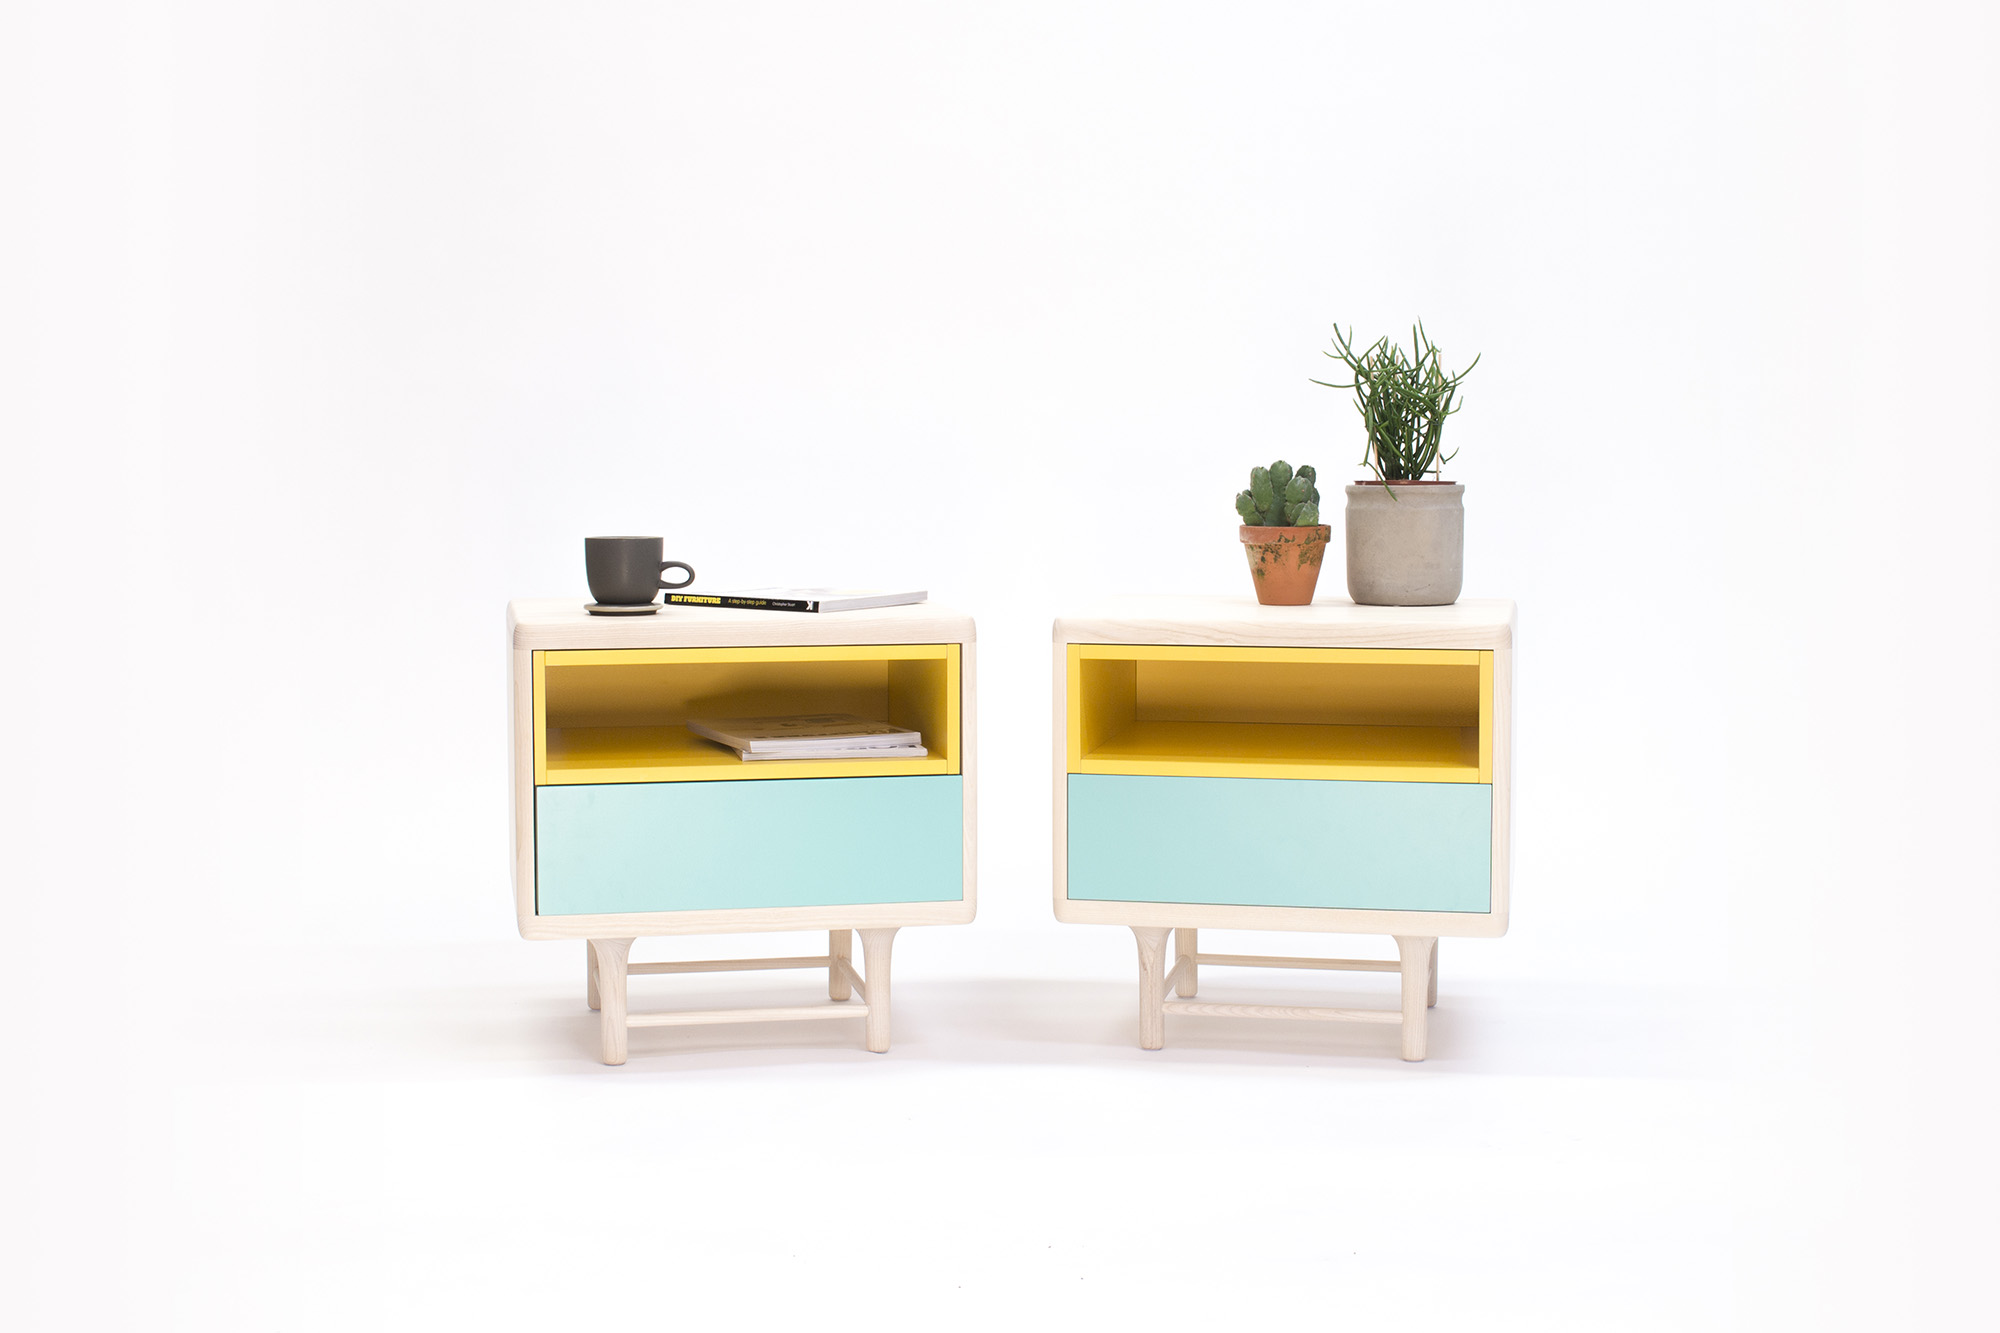 Minimal scandinavian furniture by designer carlos jim nez your no 1 source of architecture and - Furniture design modern ...